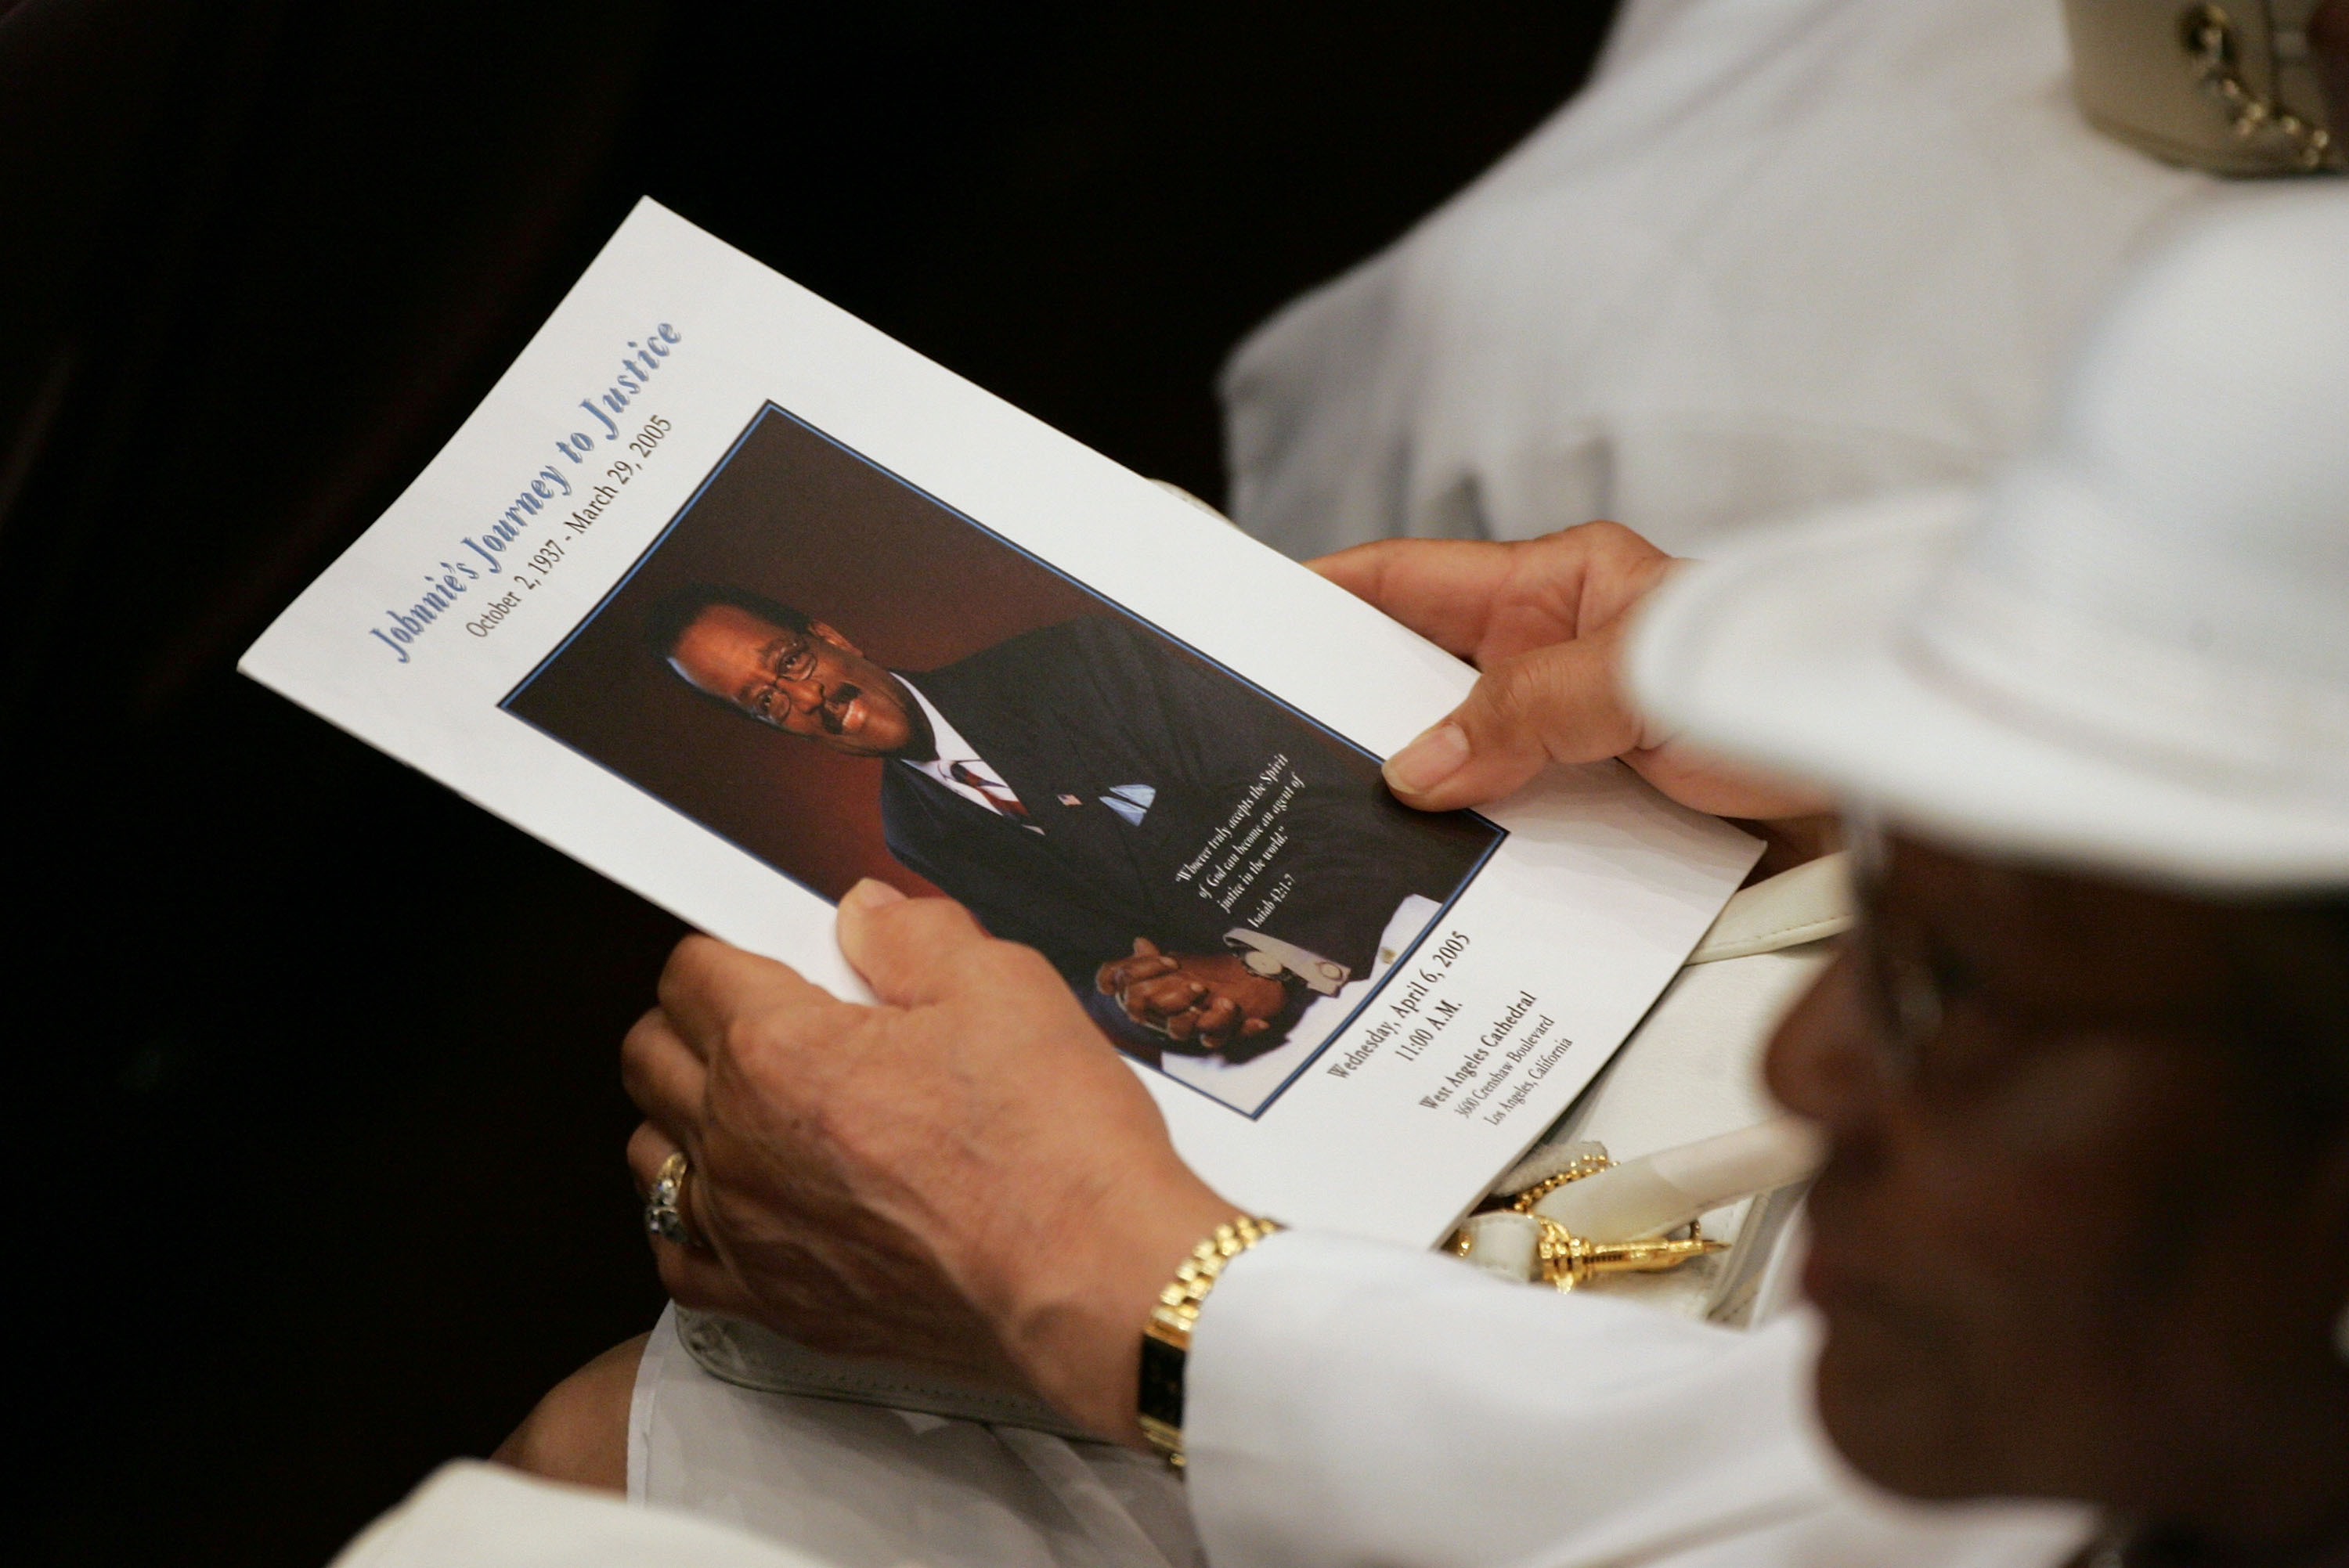 A funeral program is seen during the funeral services for lawyer Johnnie L. Cochran, Jr. at the West Angeles Cathedral on April 6, 2005 in Los Angeles, California.  (Getty)